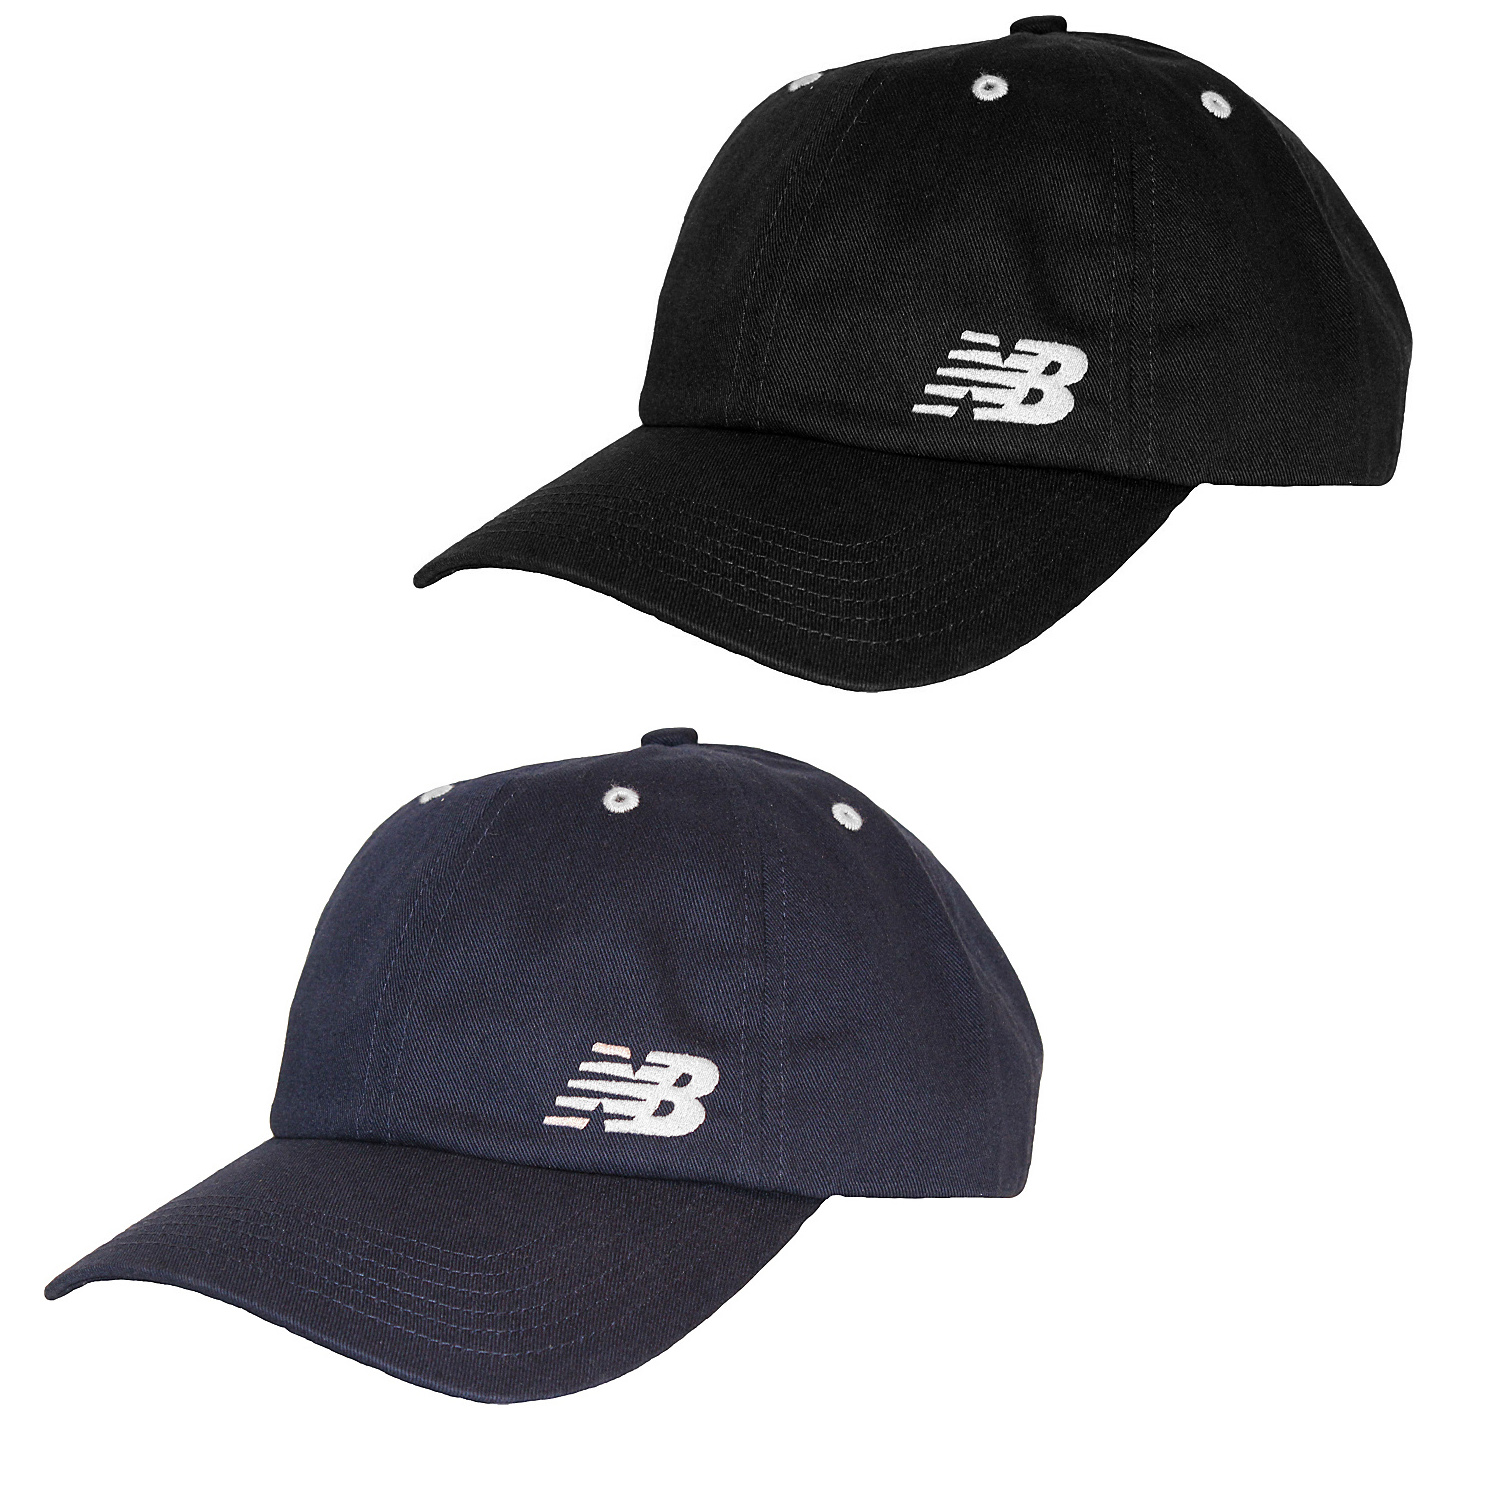 new balance mens 6 panel curved brim baseball cap hat ebay. Black Bedroom Furniture Sets. Home Design Ideas